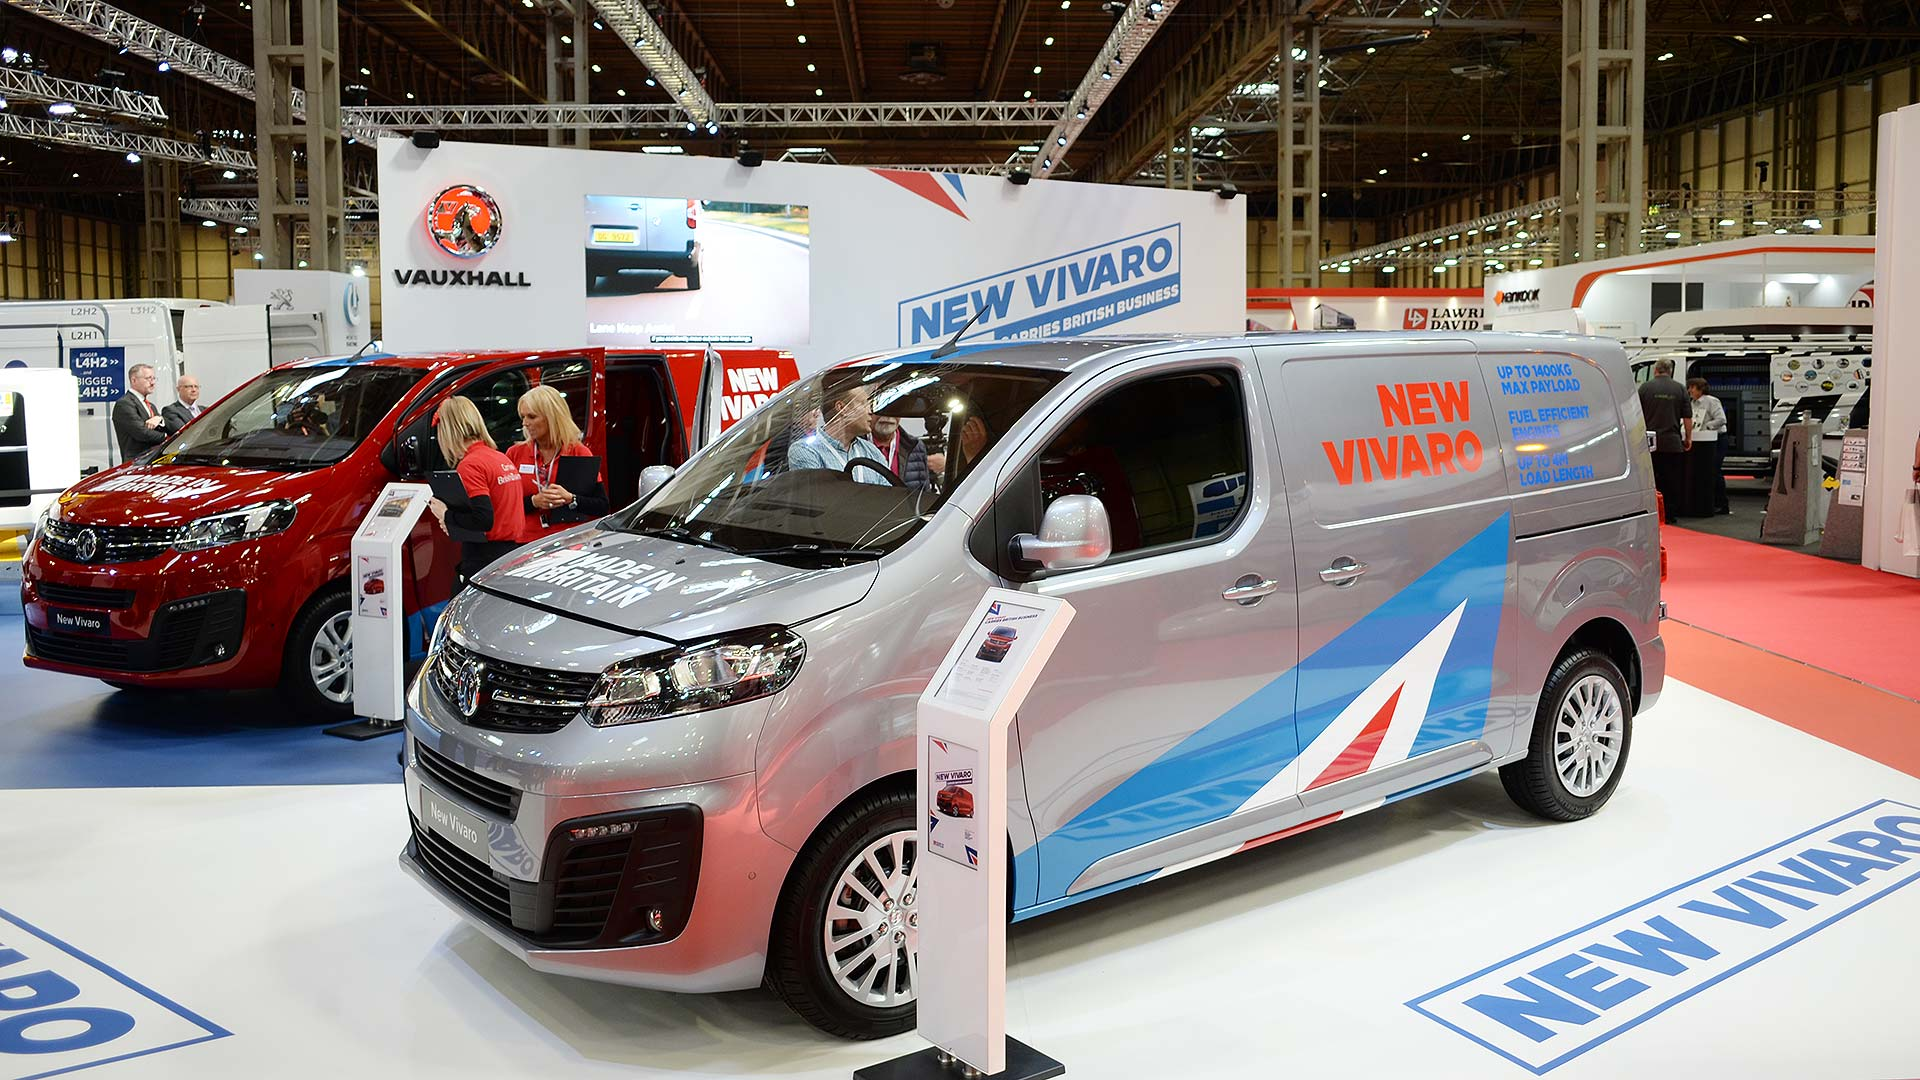 The best new vans at the 2019 CV Show